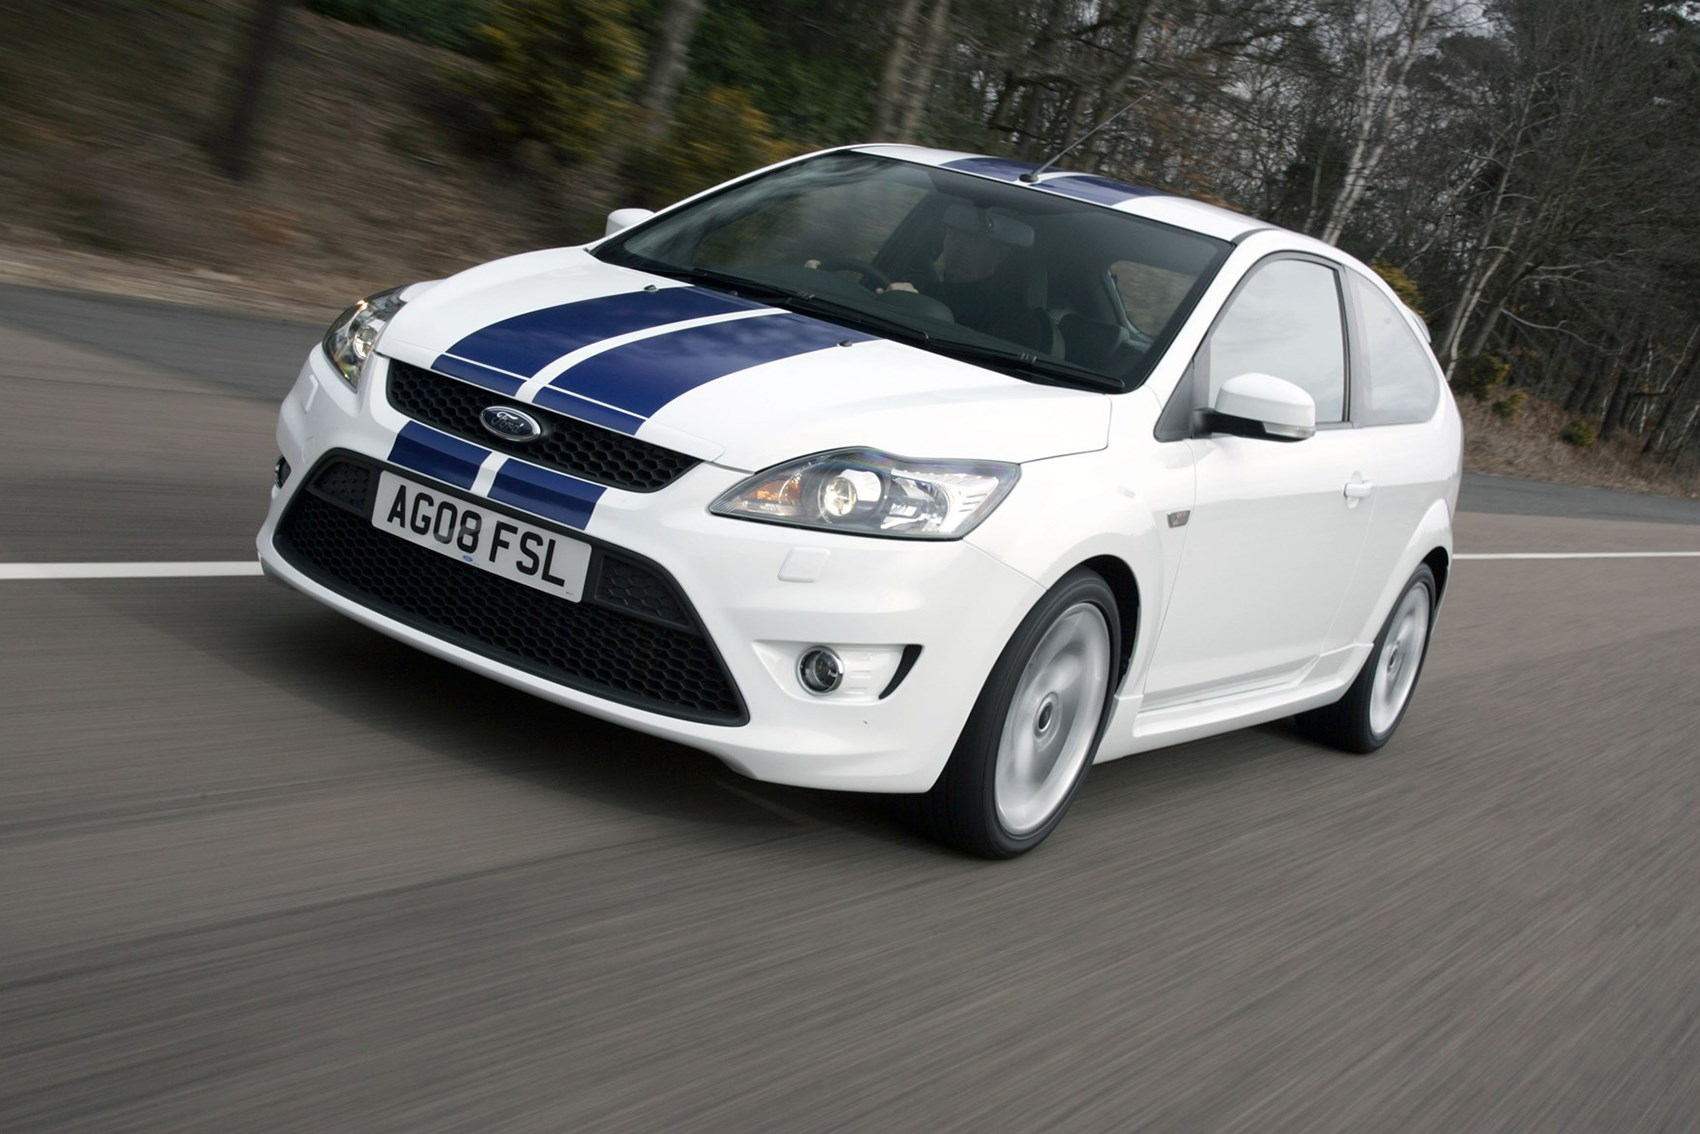 Ford Focus ST - used hatchbacks for less than £4k